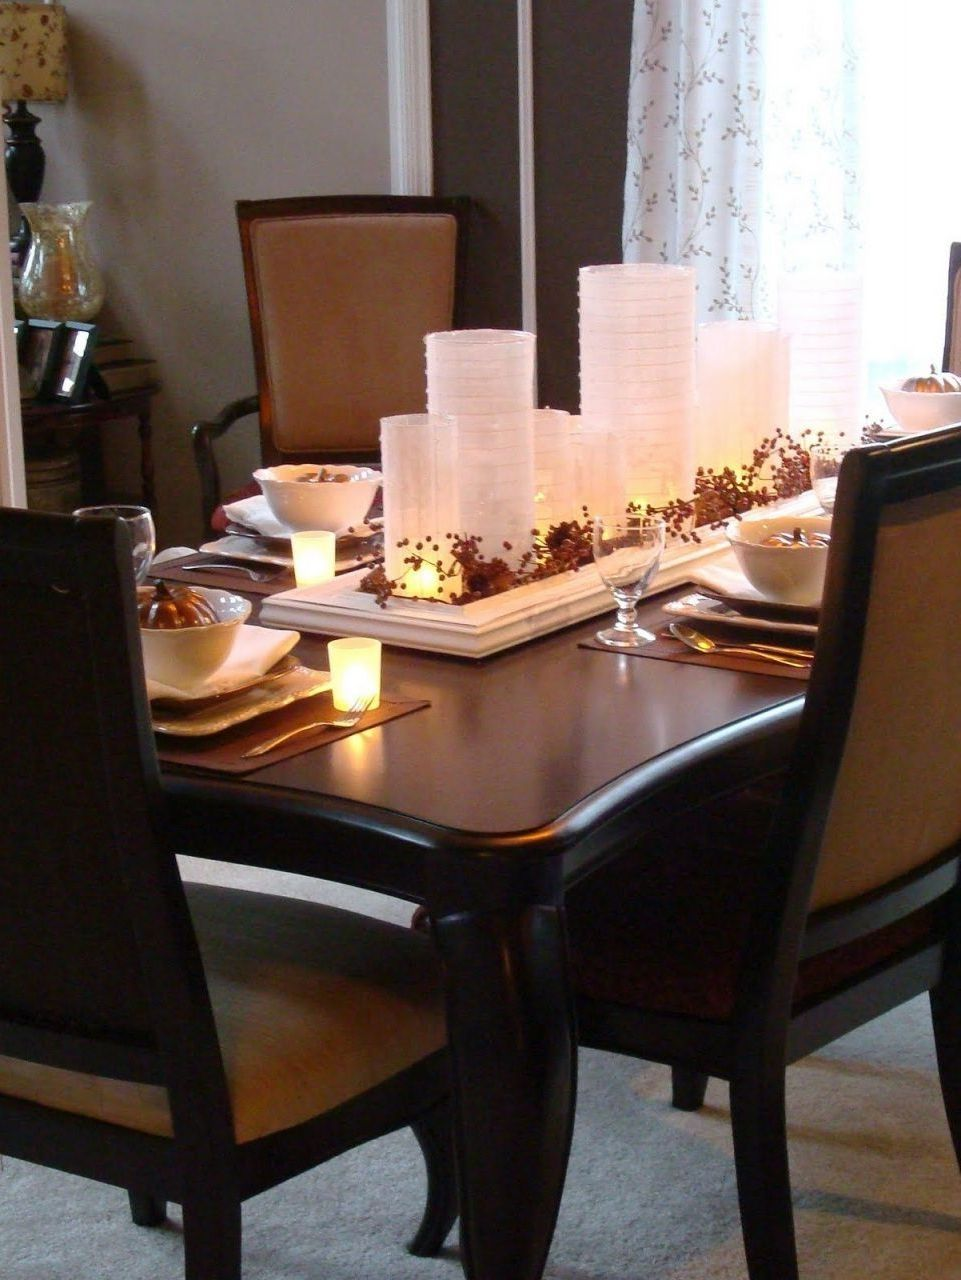 10 Best Dining Room Table Centerpieces Ideas Get Ideas Dining Room Table Centerpieces Dining Room Centerpiece Dining Room Table Decor